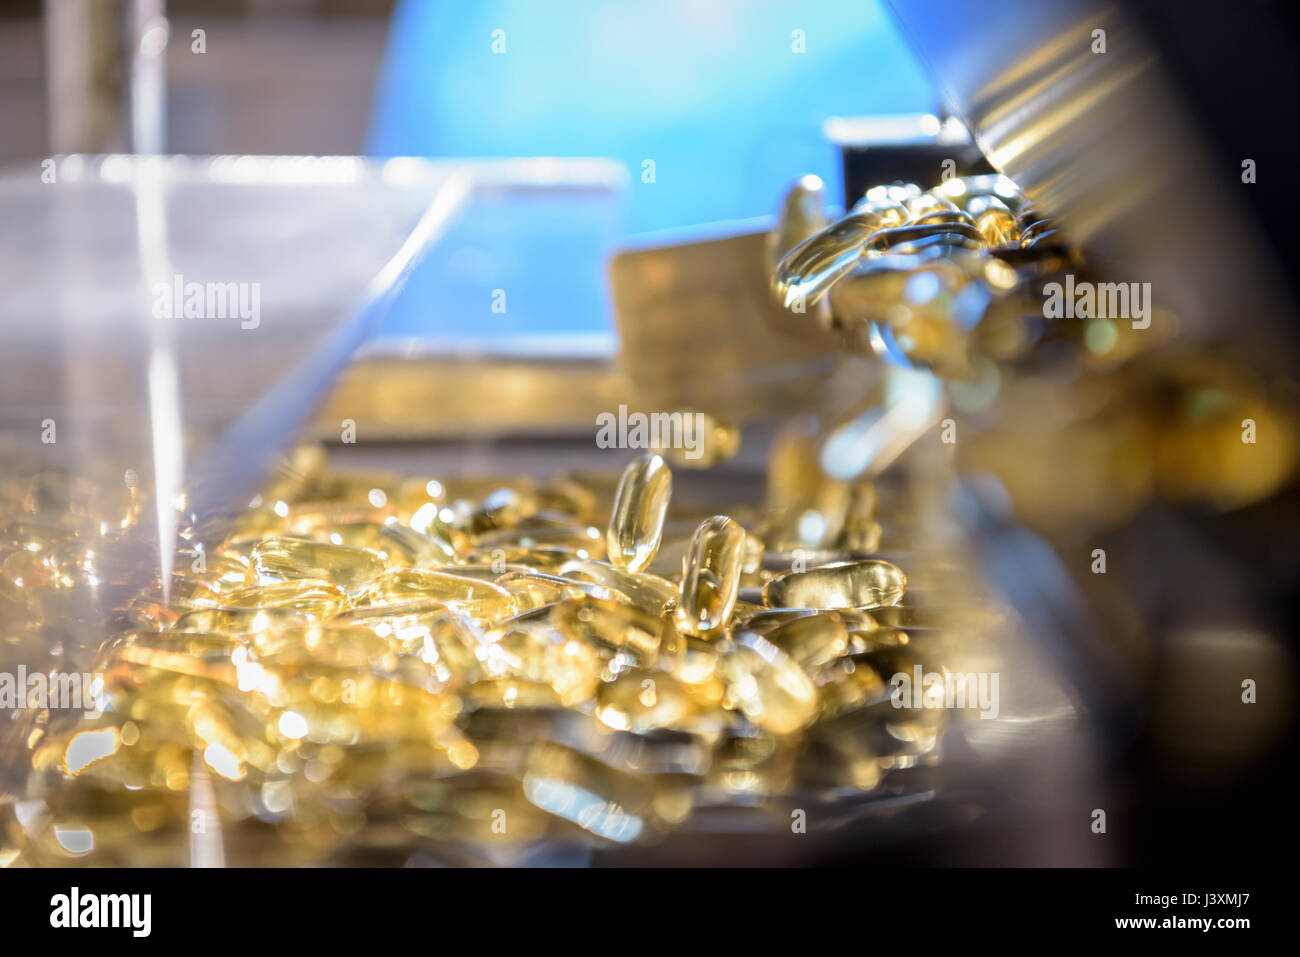 Capsules on production line in pharmaceutical factory - Stock Image